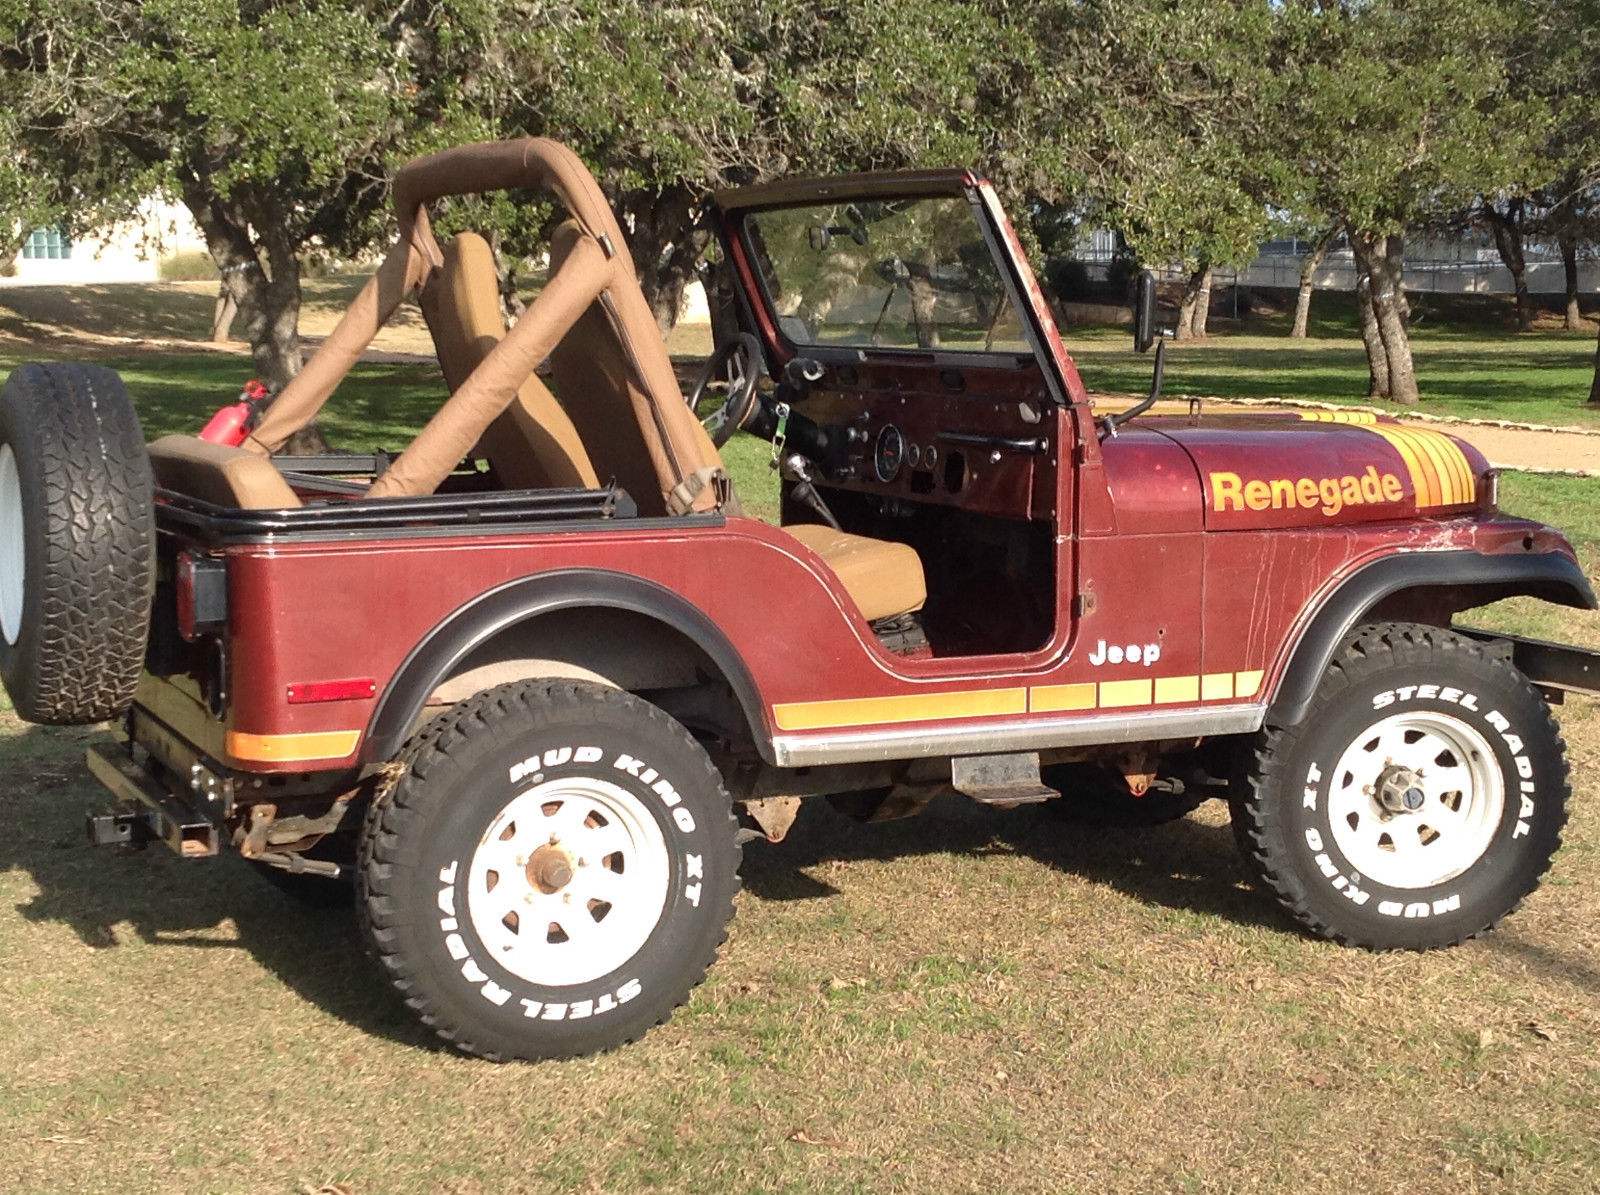 Classic 1980 Jeep Cj5 Renegade Factory V8 With 4 Speed Trans Old For Sale